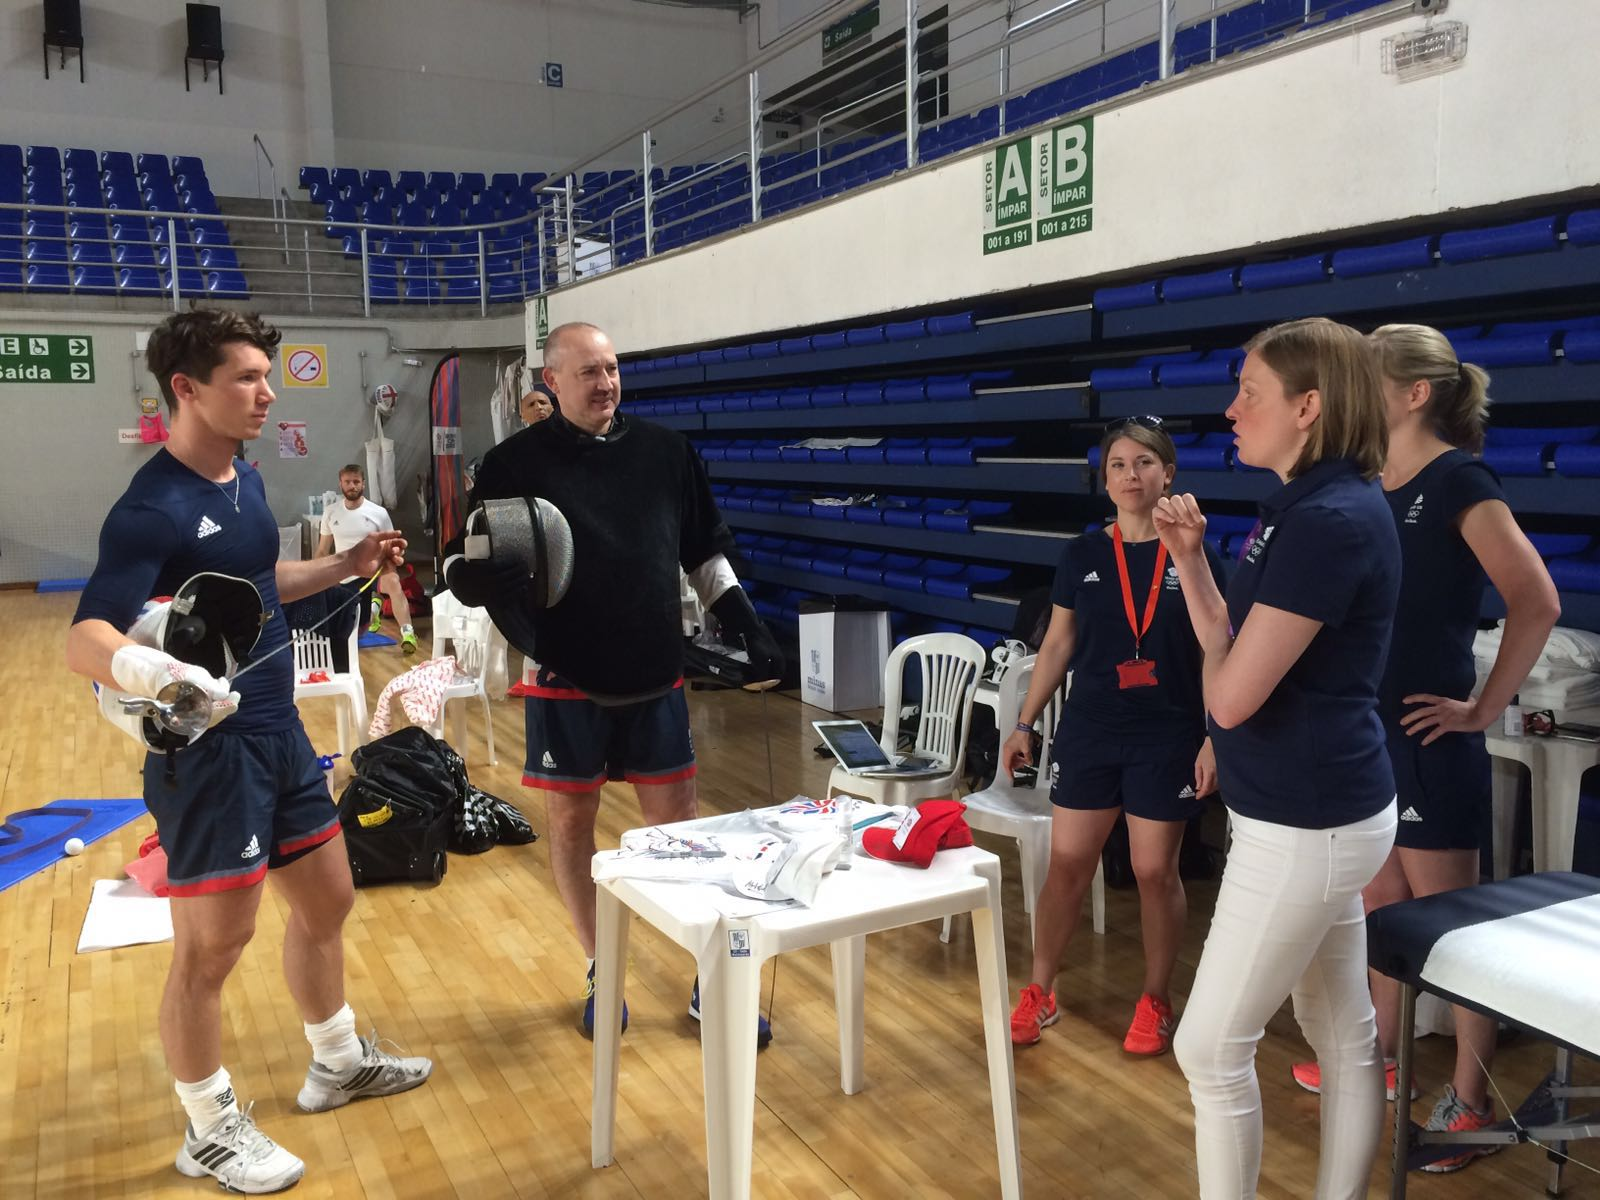 Tracey Crouch visit Team GB in Rio